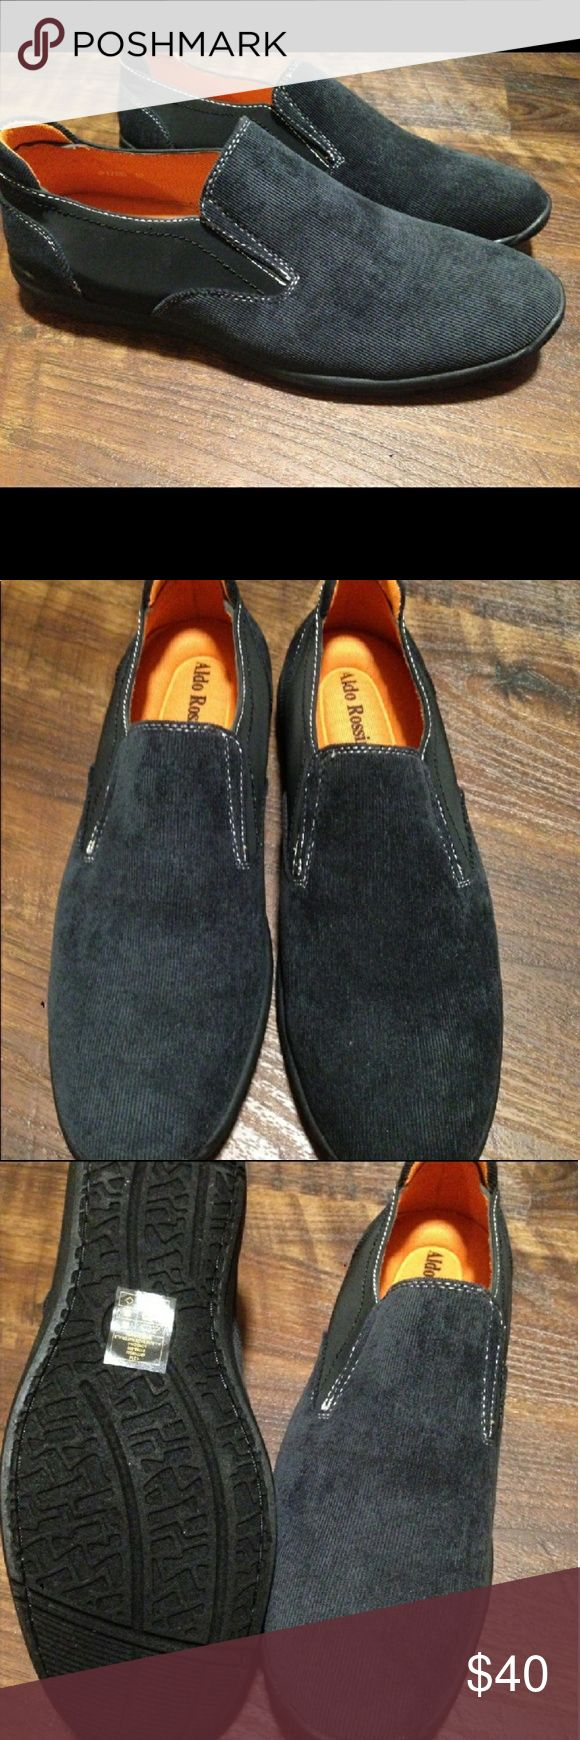 Brand NWT* Black Loafer/Slip On Brand NWT Aldo Rossini Black/Loafer/Slip On  size: Tag says 12 but shoe runs small fits like 11or 11.5 , excellent condition , with box , smoke free an pet free home. Aldo Rossini Shoes Loafers & Slip-Ons